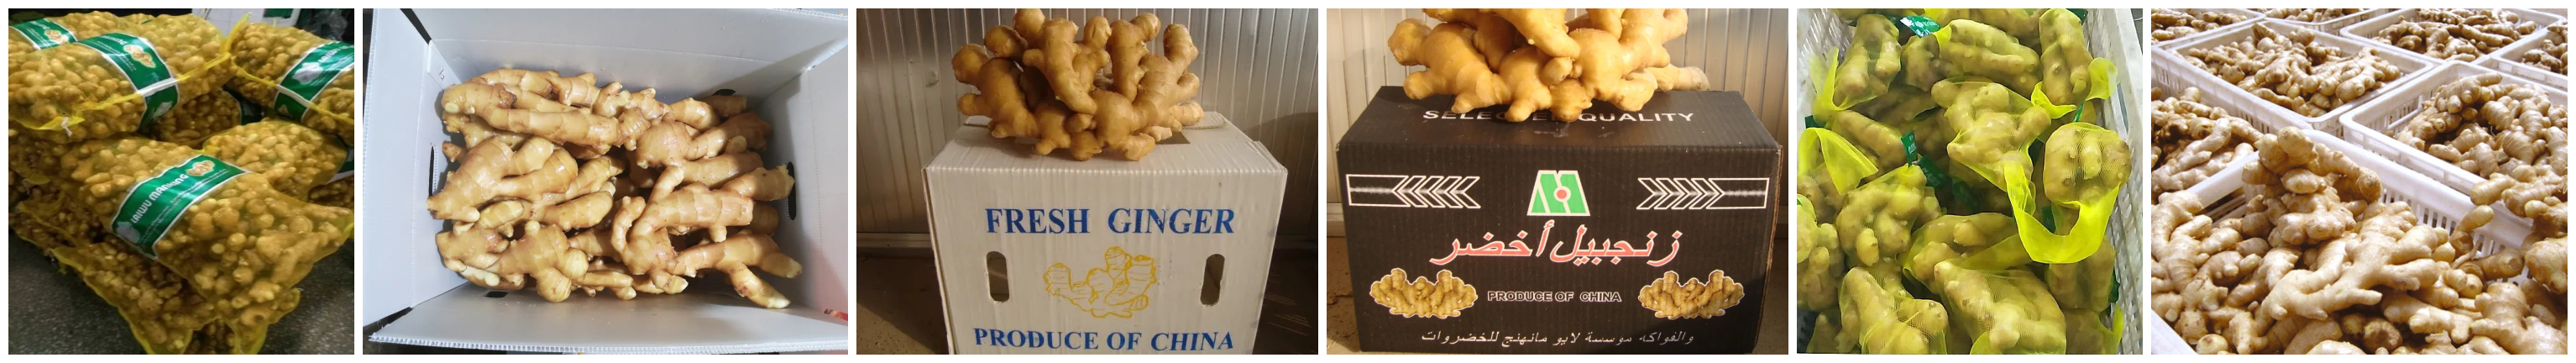 Ginger Packing